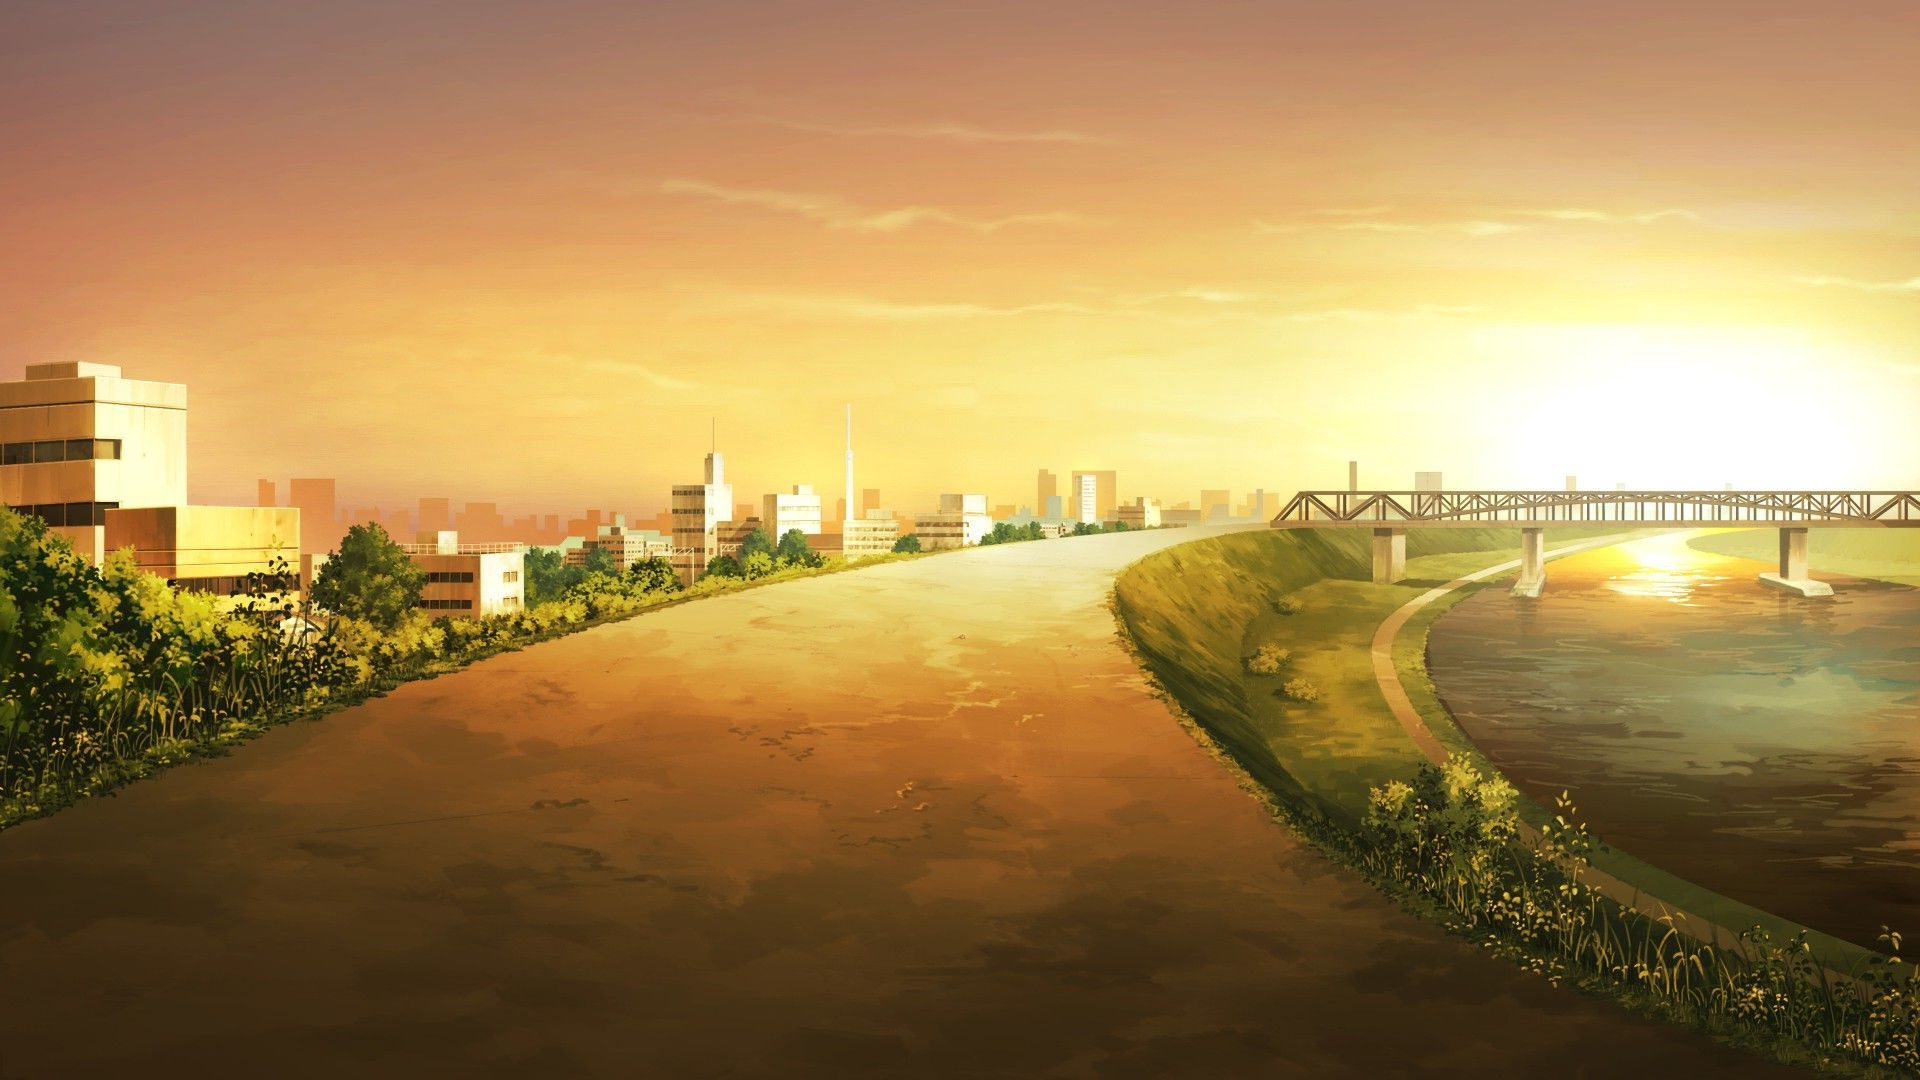 anime city desktop wallpaper 50841